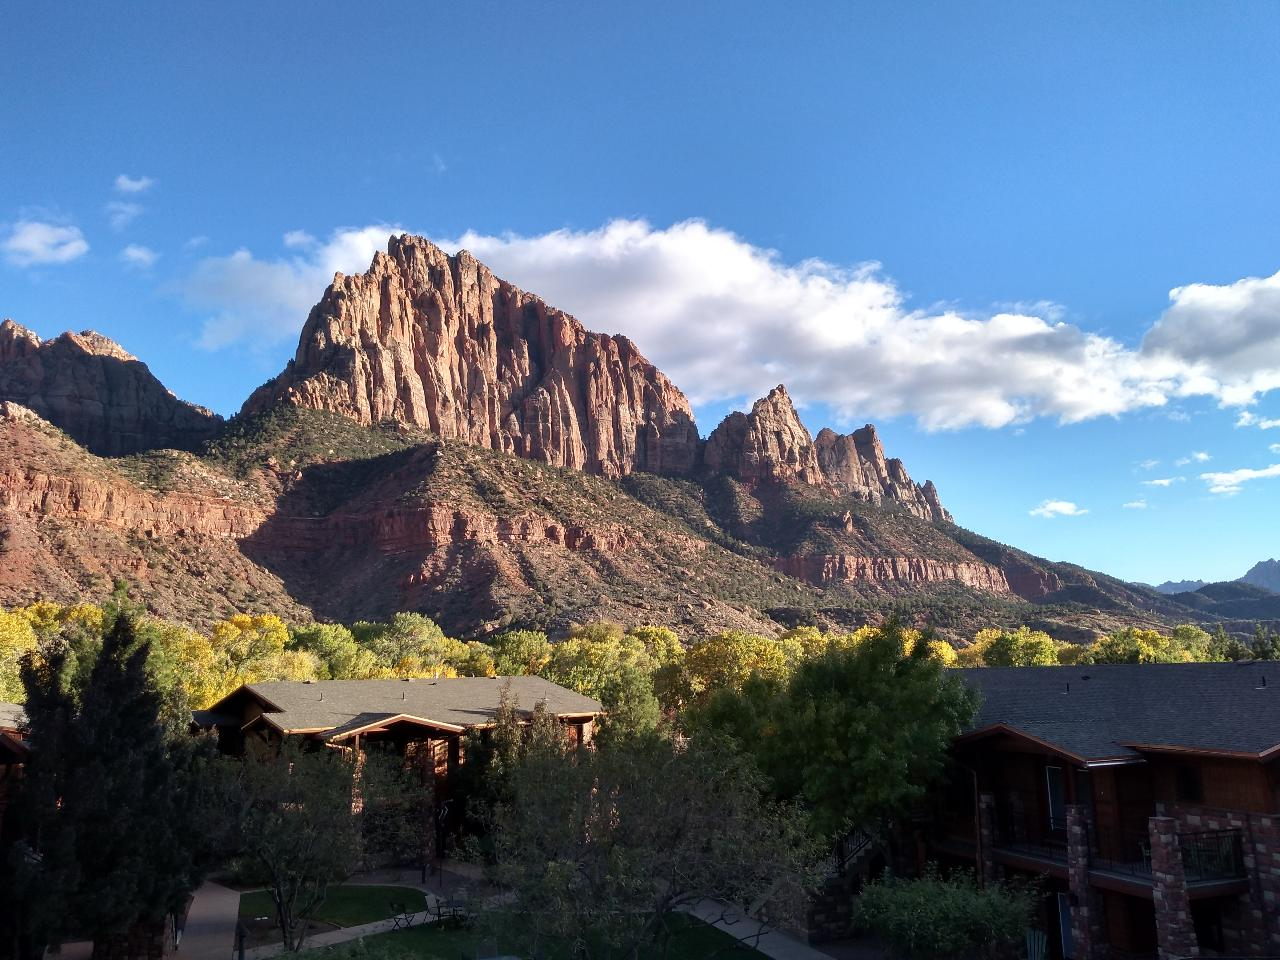 One-way Shuttle: Ruby's Inn (Bryce area) to Springdale (Zion area)